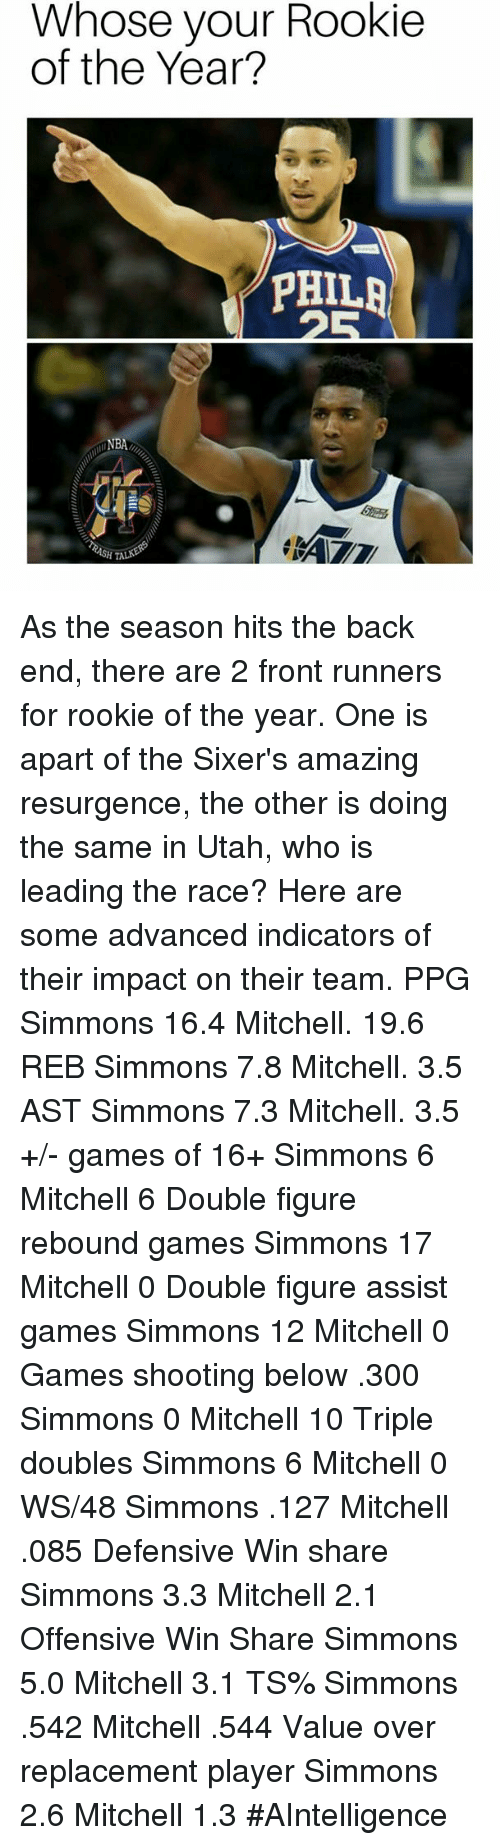 Front Runners: Whose your Rookie  of the Year?  PHILR  NBA As the season hits the back end, there are 2 front runners for rookie of the year. One is apart of the Sixer's amazing resurgence, the other is doing the same in Utah, who is leading the race? Here are some advanced indicators of their impact on their team.  PPG Simmons 16.4 Mitchell. 19.6  REB Simmons 7.8 Mitchell.  3.5  AST Simmons 7.3 Mitchell. 3.5  +/- games of 16+ Simmons 6 Mitchell 6  Double figure rebound games Simmons 17 Mitchell 0  Double figure assist games Simmons 12 Mitchell 0  Games shooting below .300 Simmons 0 Mitchell 10  Triple doubles  Simmons 6  Mitchell 0  WS/48 Simmons .127 Mitchell .085  Defensive Win share Simmons 3.3 Mitchell 2.1  Offensive Win Share Simmons 5.0 Mitchell 3.1  TS% Simmons .542 Mitchell .544  Value over replacement player Simmons 2.6 Mitchell 1.3  #AIntelligence